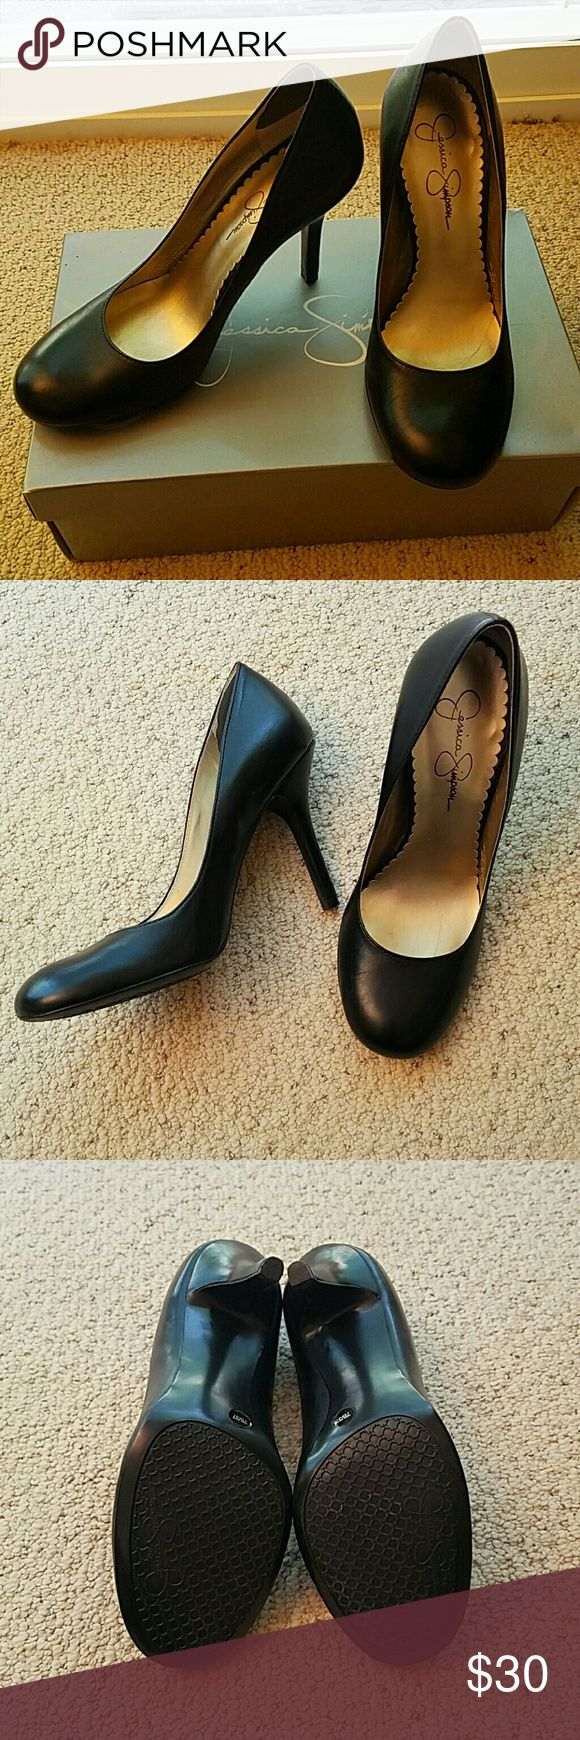 Jessica Simpson Black Pumps Excellent used condition!! Worn twice for job interviews. Black leather. Size 7 M. Brought at Nordstrom. Jessica Simpson Shoes Heels